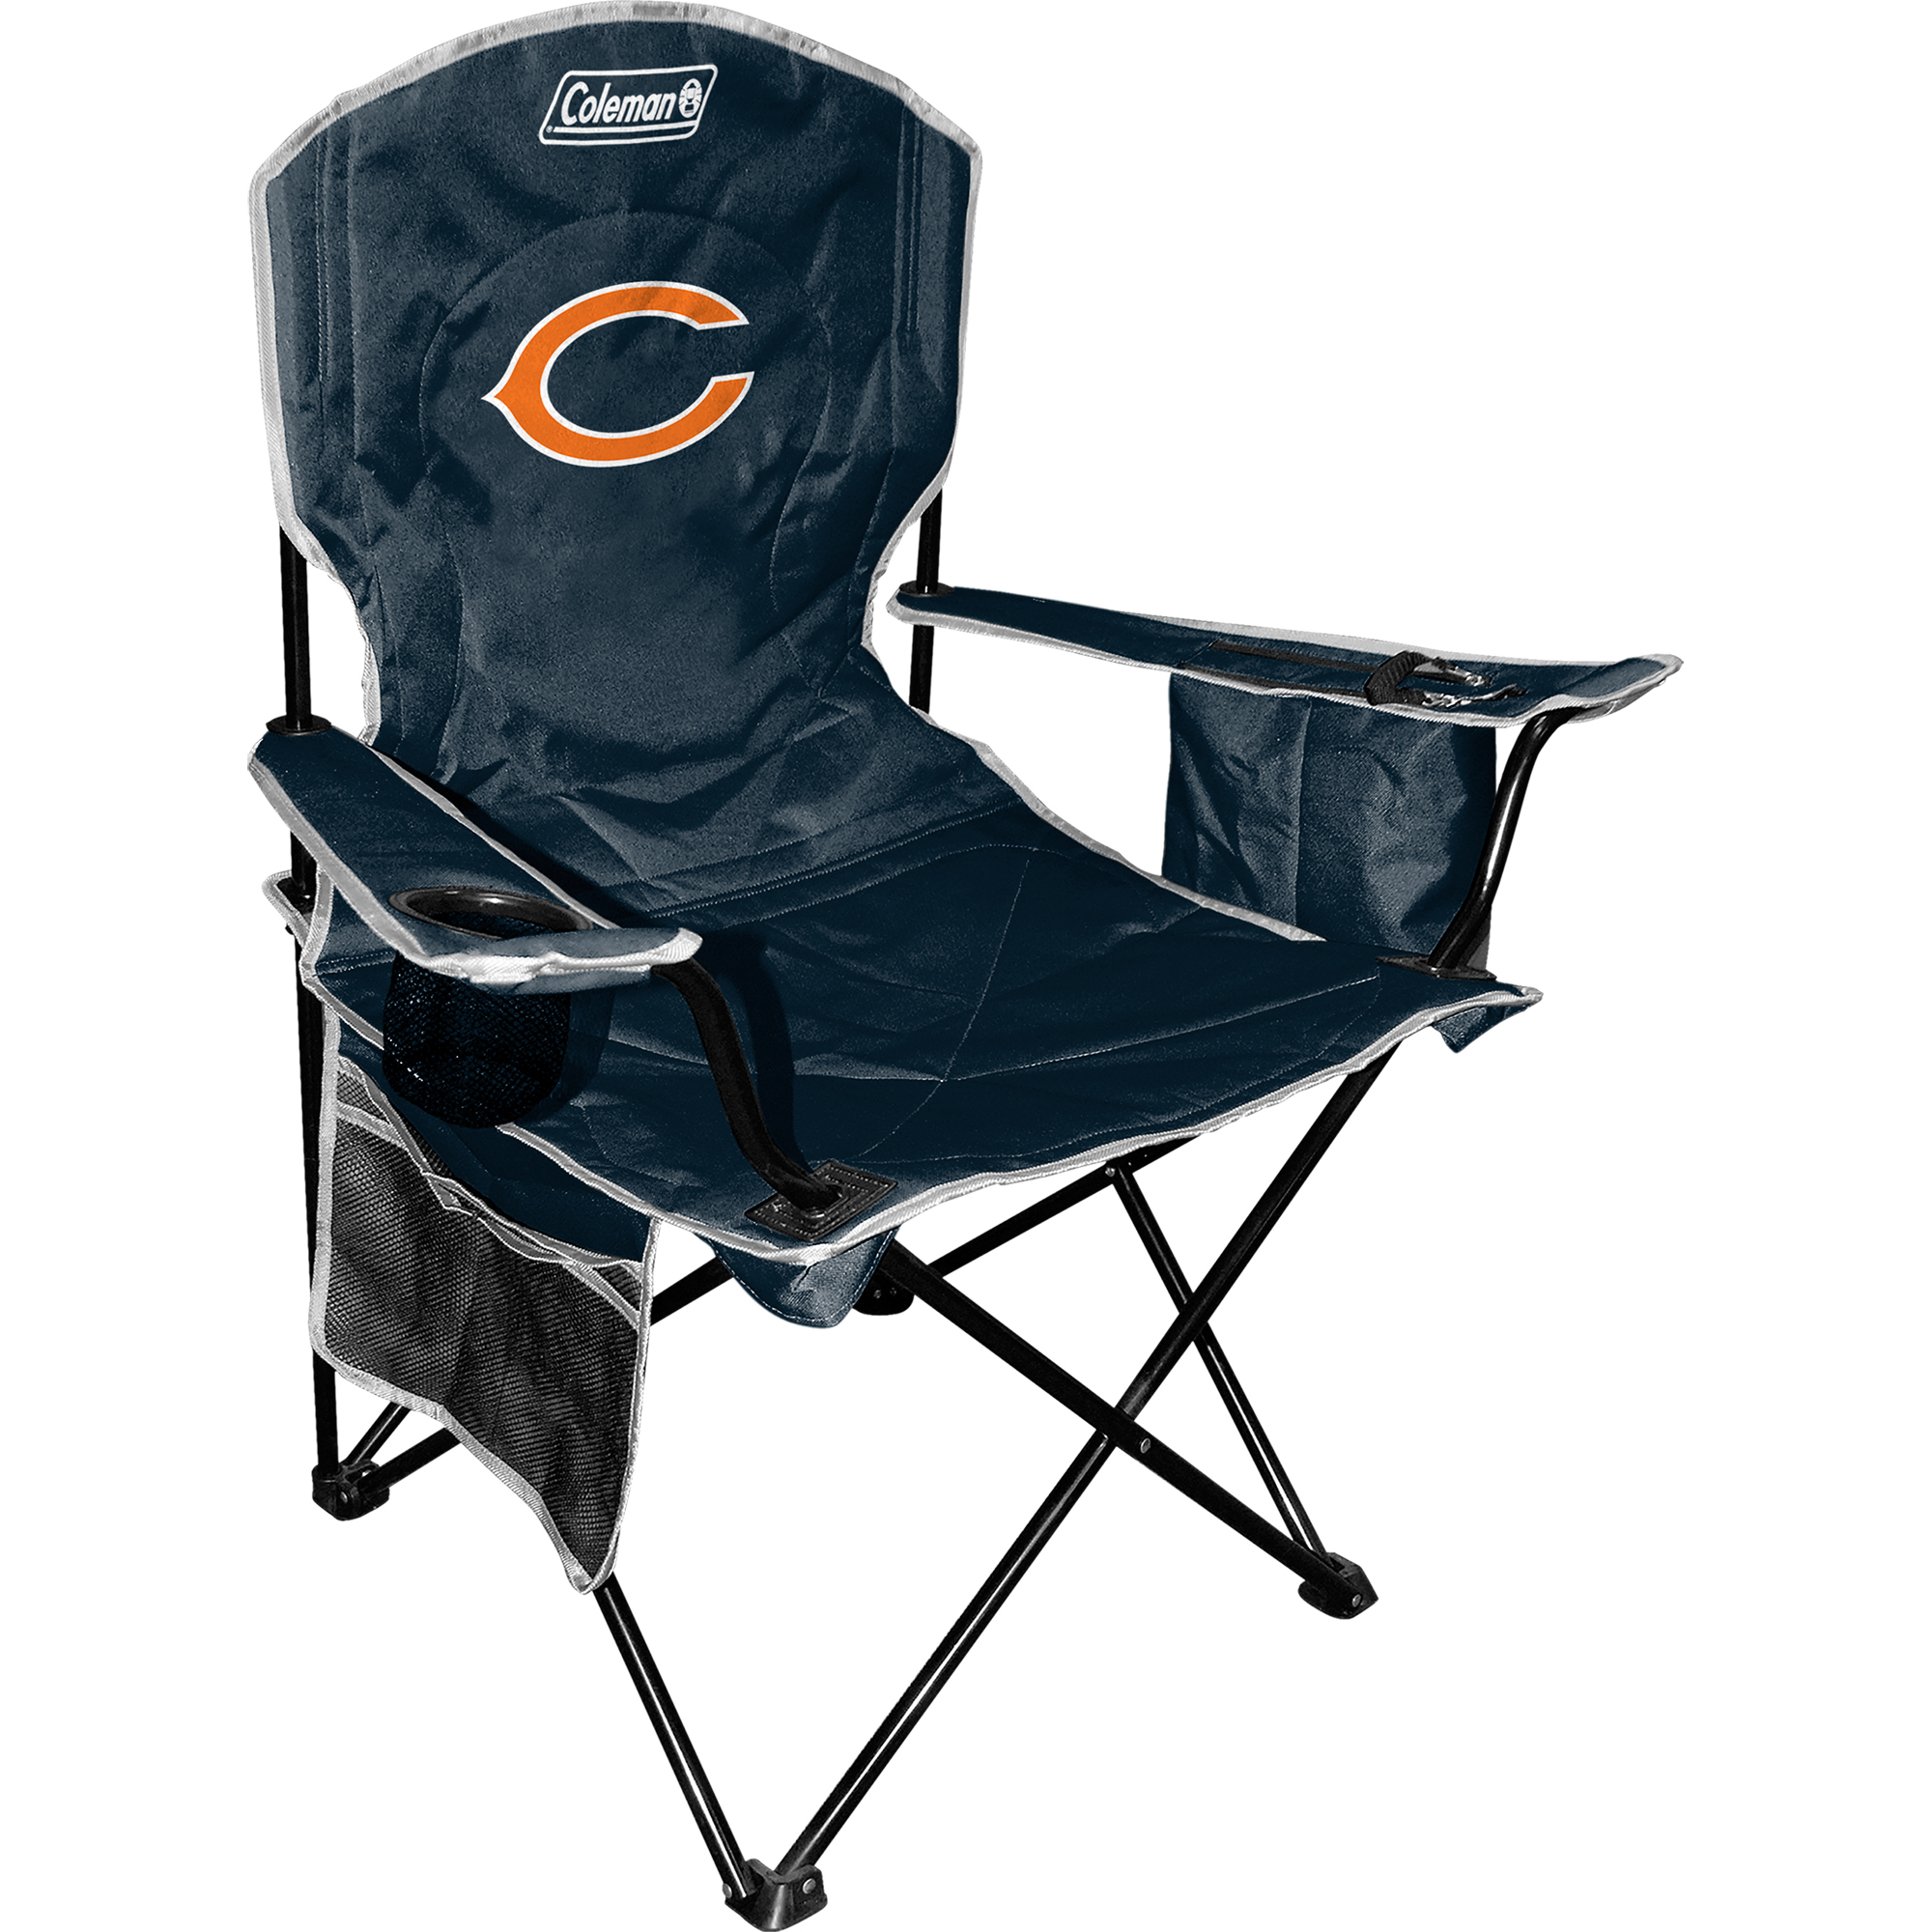 Coleman Quad Chair with 4- to 6-Can Cooler, Chicago Bears